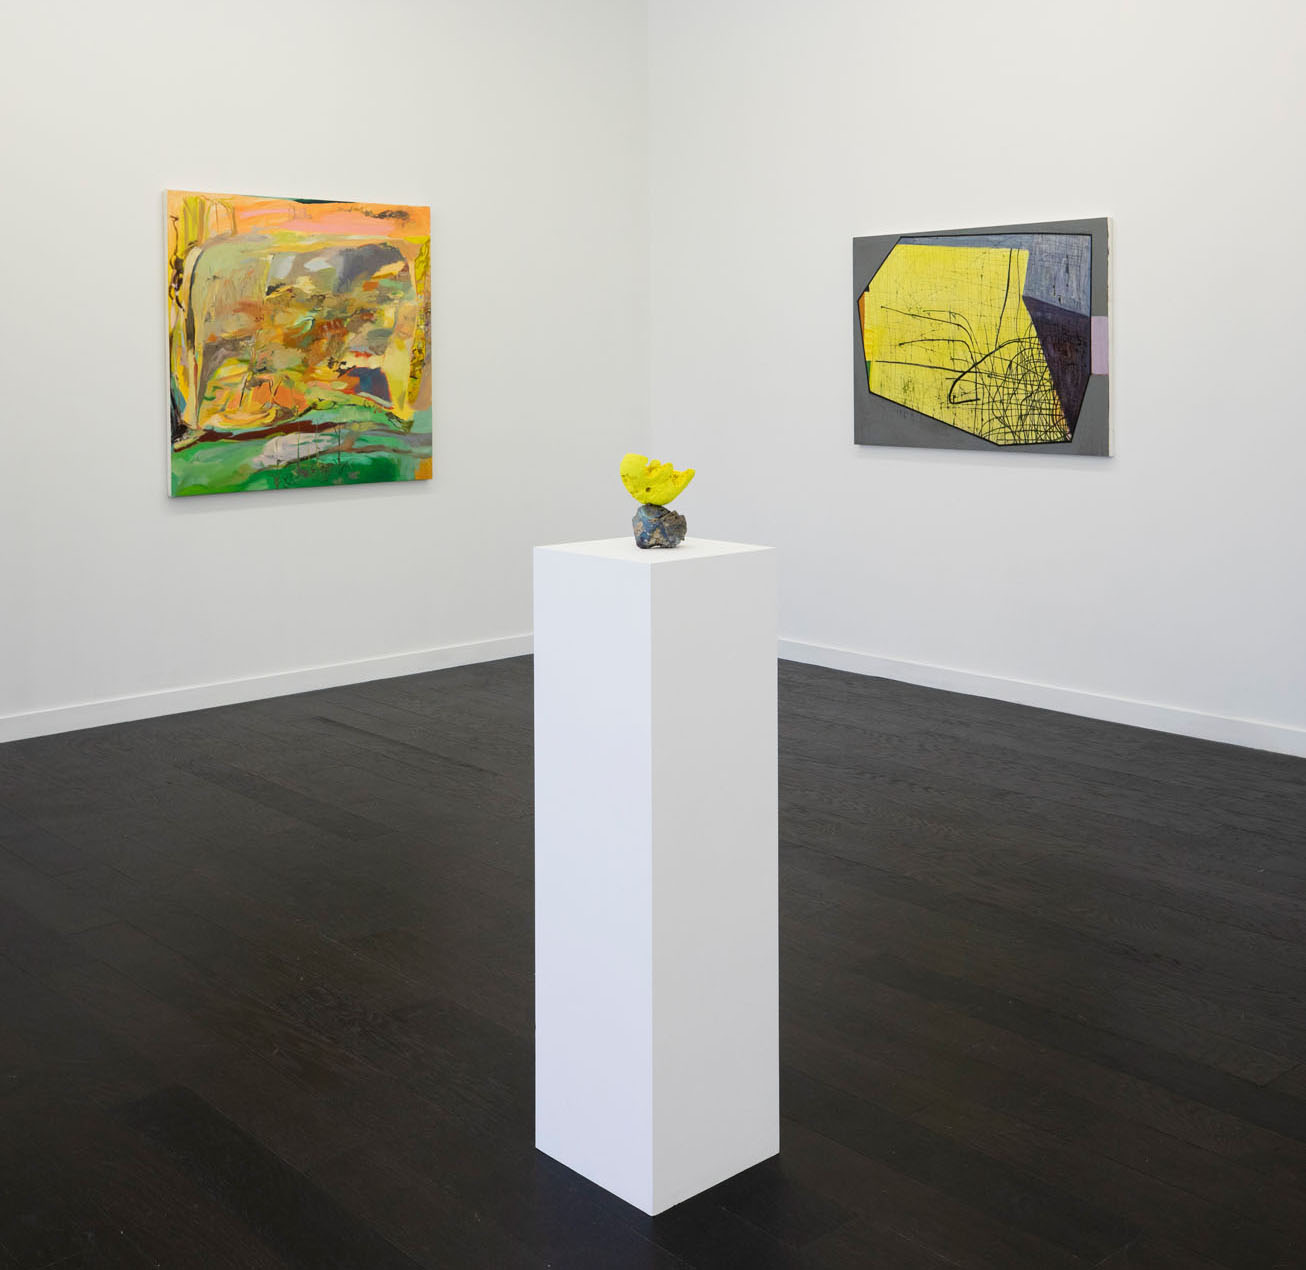 """Yellow"" at September Gallery, Hudson, NY, June 22 - August 4, 2019   Left to right: Ashley Garrett, Michelle Segre, Brenda Goodman"